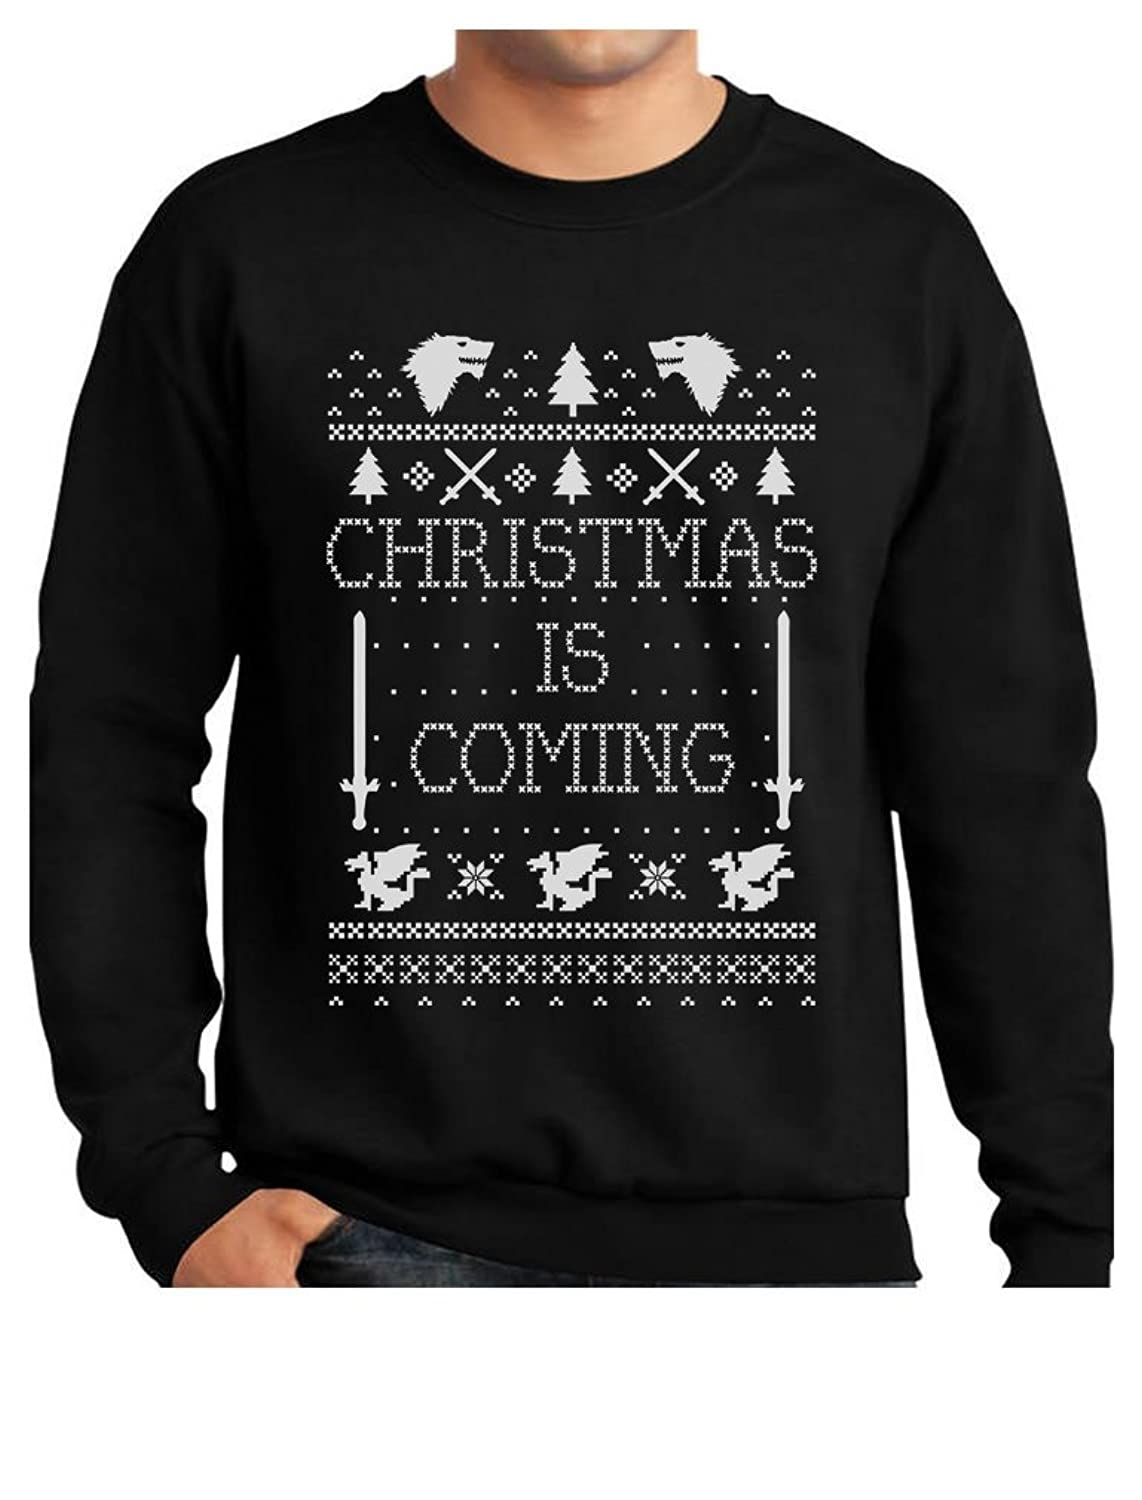 Christmas Is Coming Ugly Christmas Sweater Men's Sweatshirt with Xmas Prop